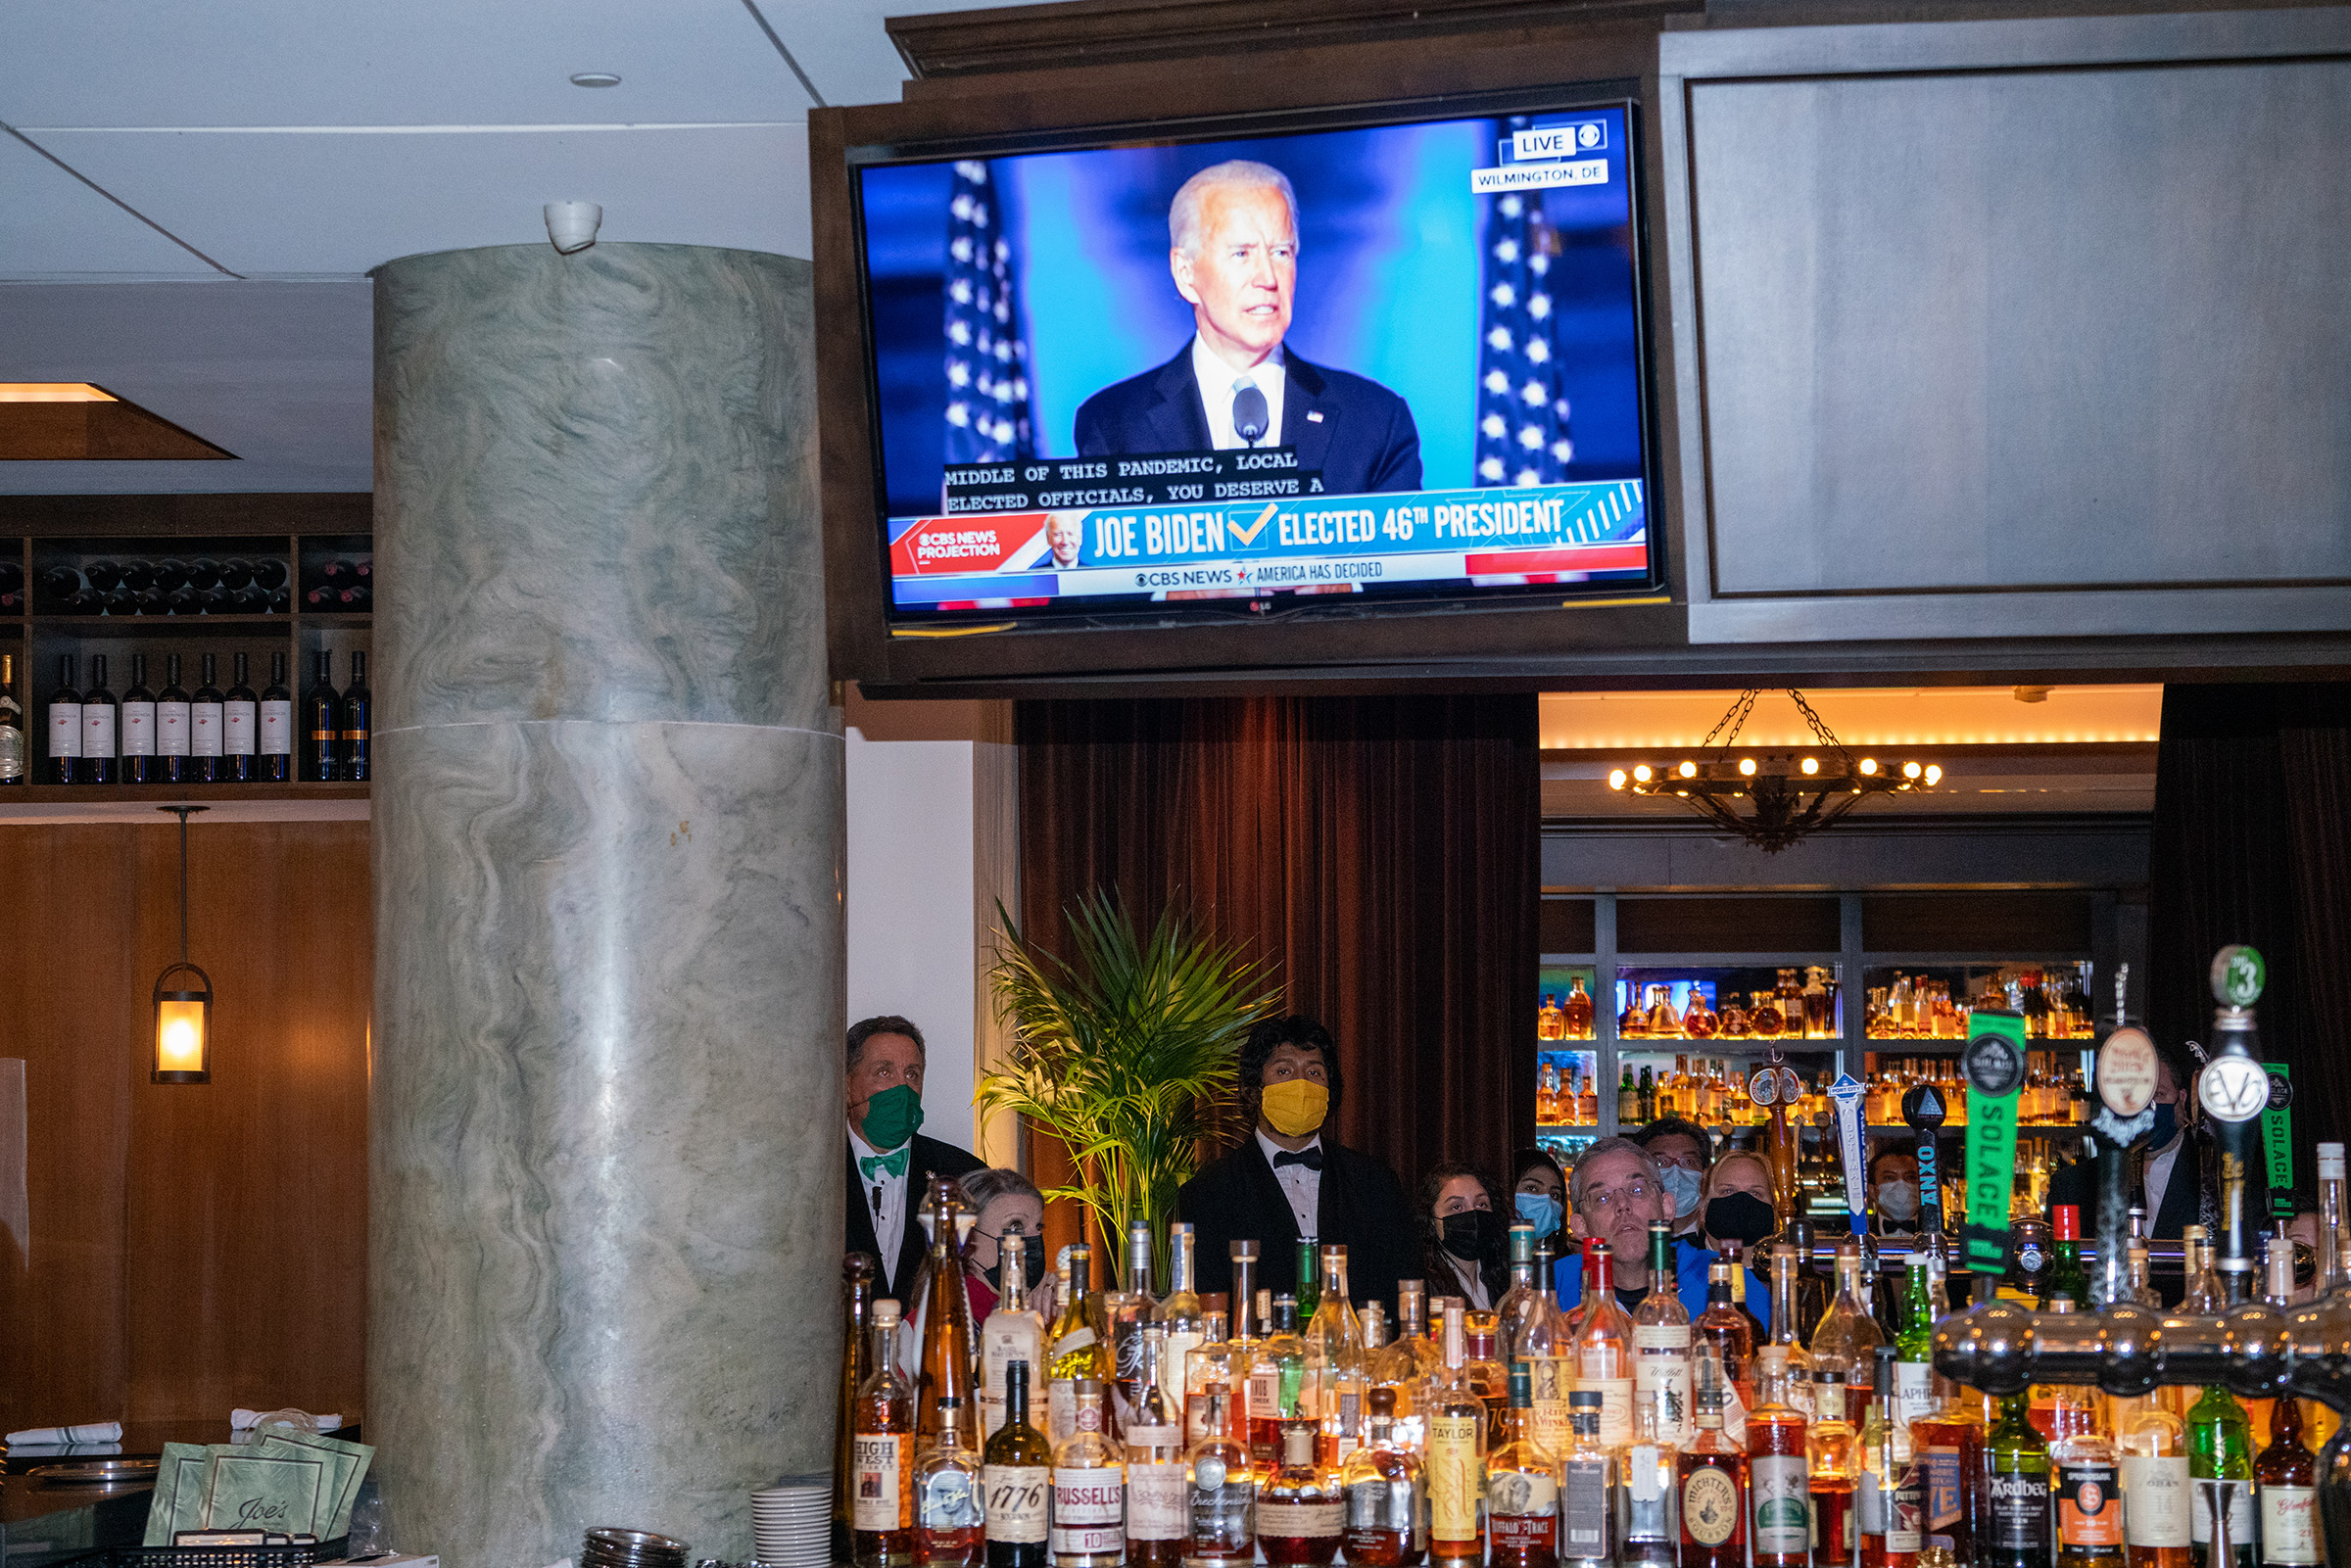 Joe Biden's first speech as President-elect is broadcast at a restaurant in Washington, D.C., on Nov. 7.